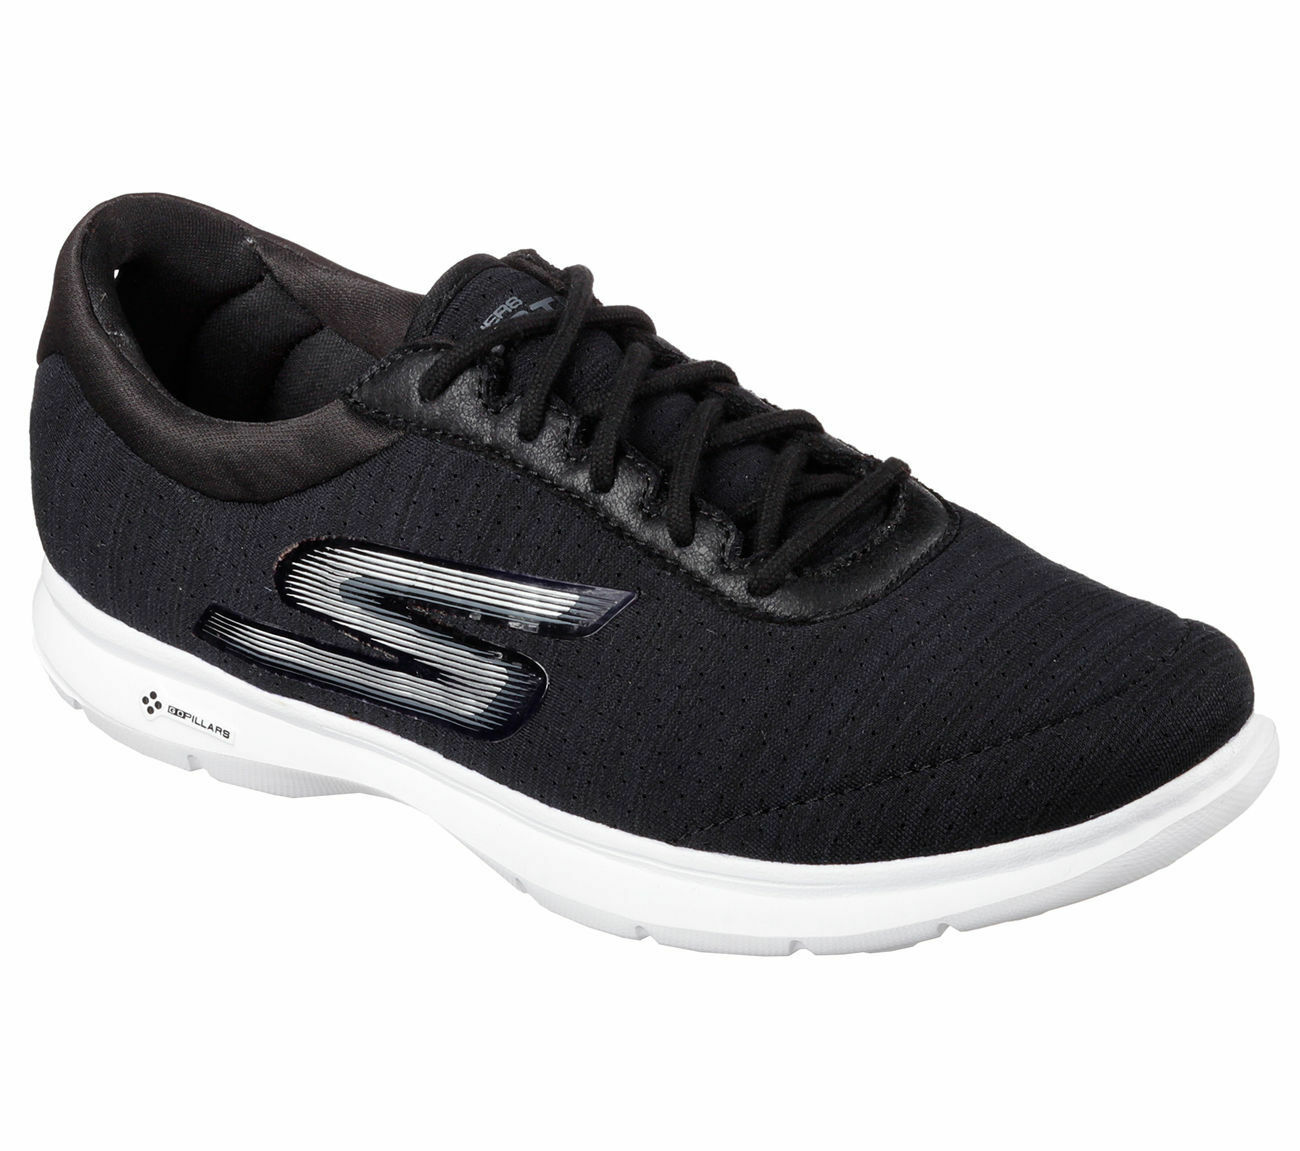 SKECHERS WOMEN'S GO STEP UNMATCHED AIR COOLED MEMORY FOAM 14203 BKW BLACK WEISS